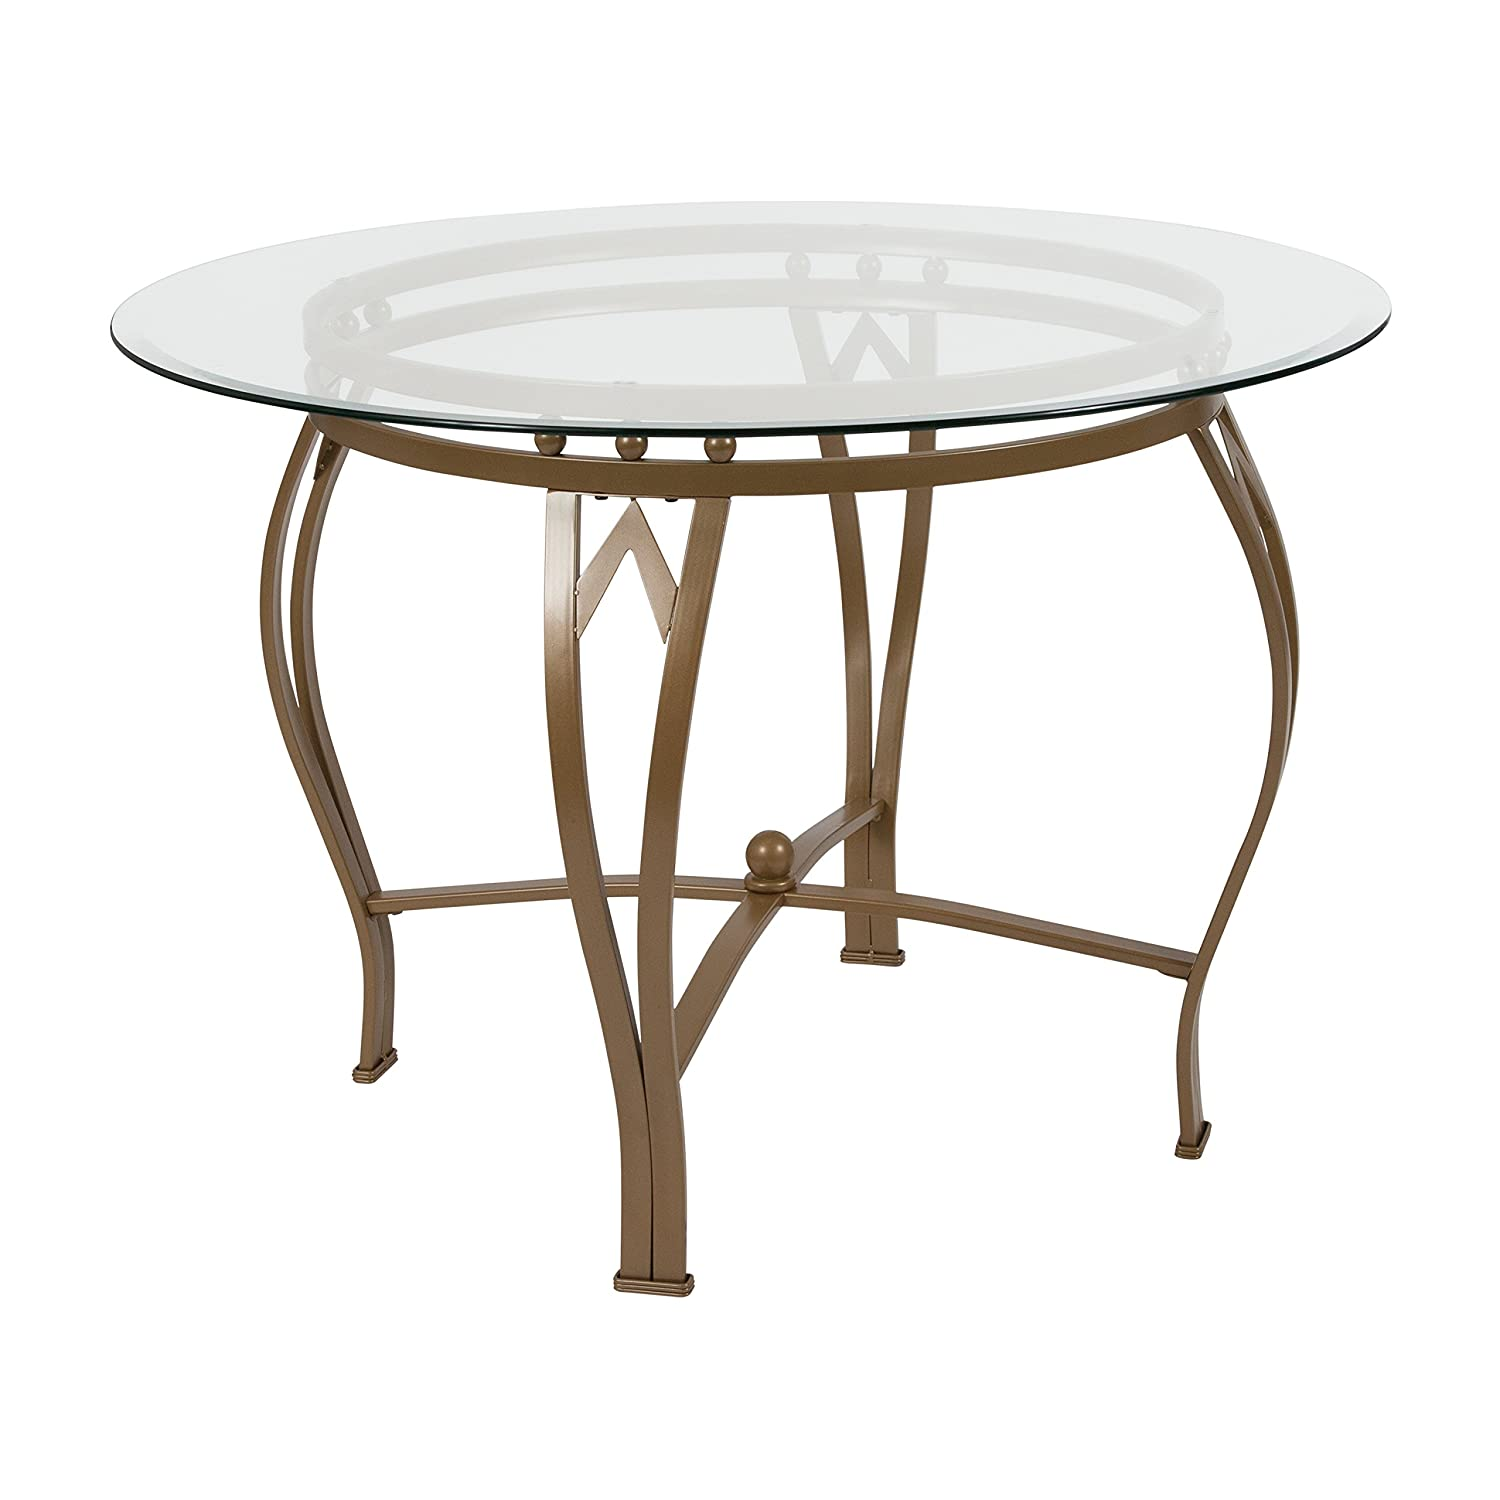 Flash Furniture Syracuse 42 Round Glass Dining Table with Matte Gold Metal Frame